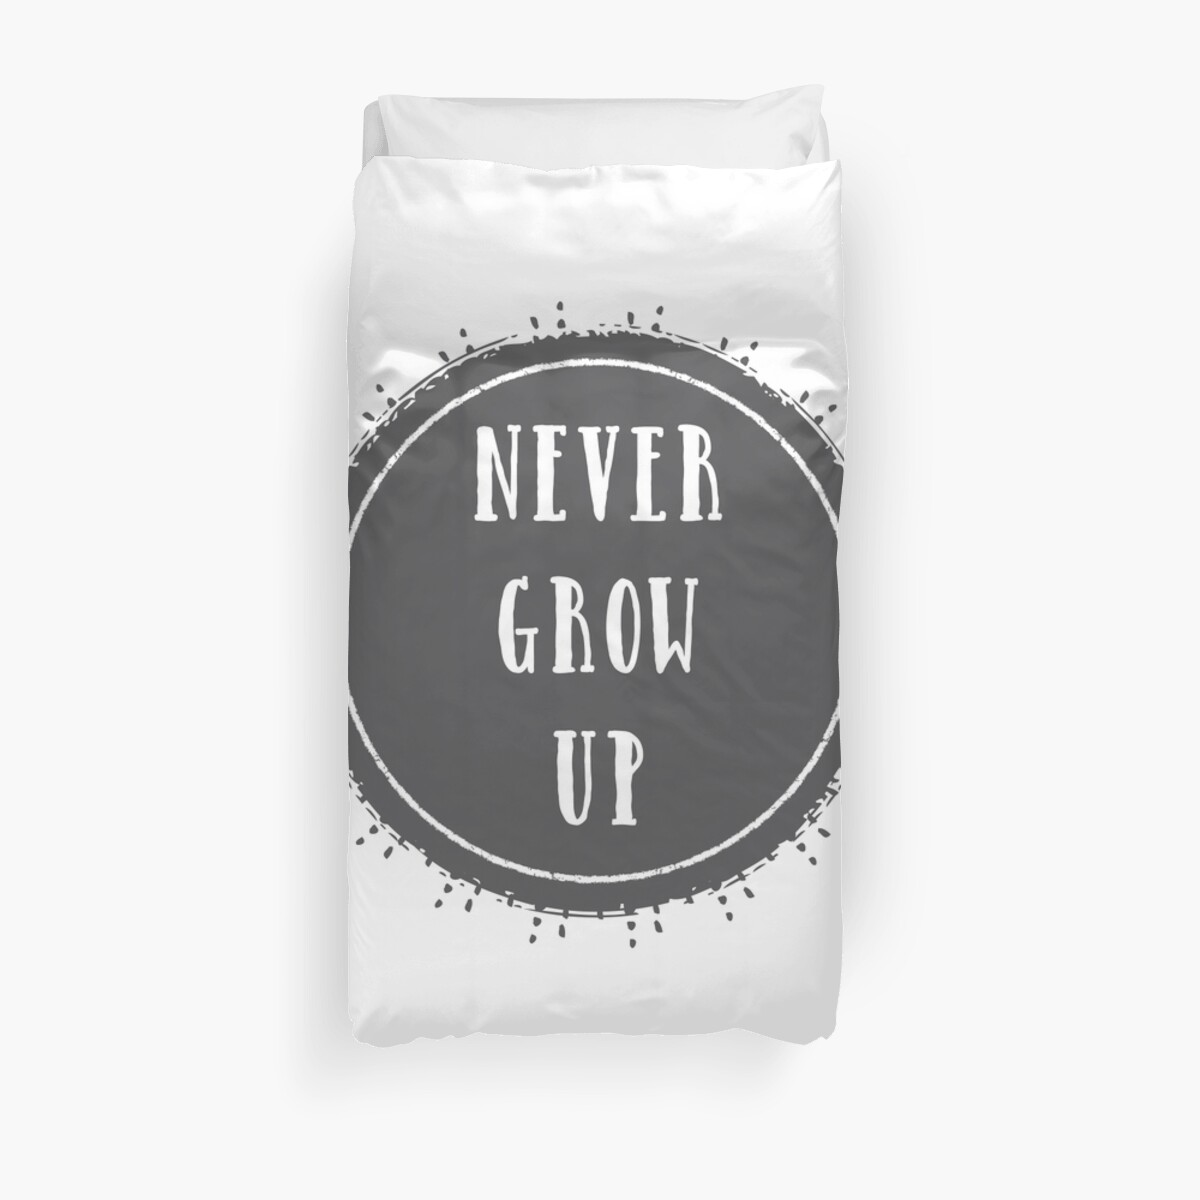 Never Grow Up Peter Pan Quote Duvet Covers By Nordicstudio